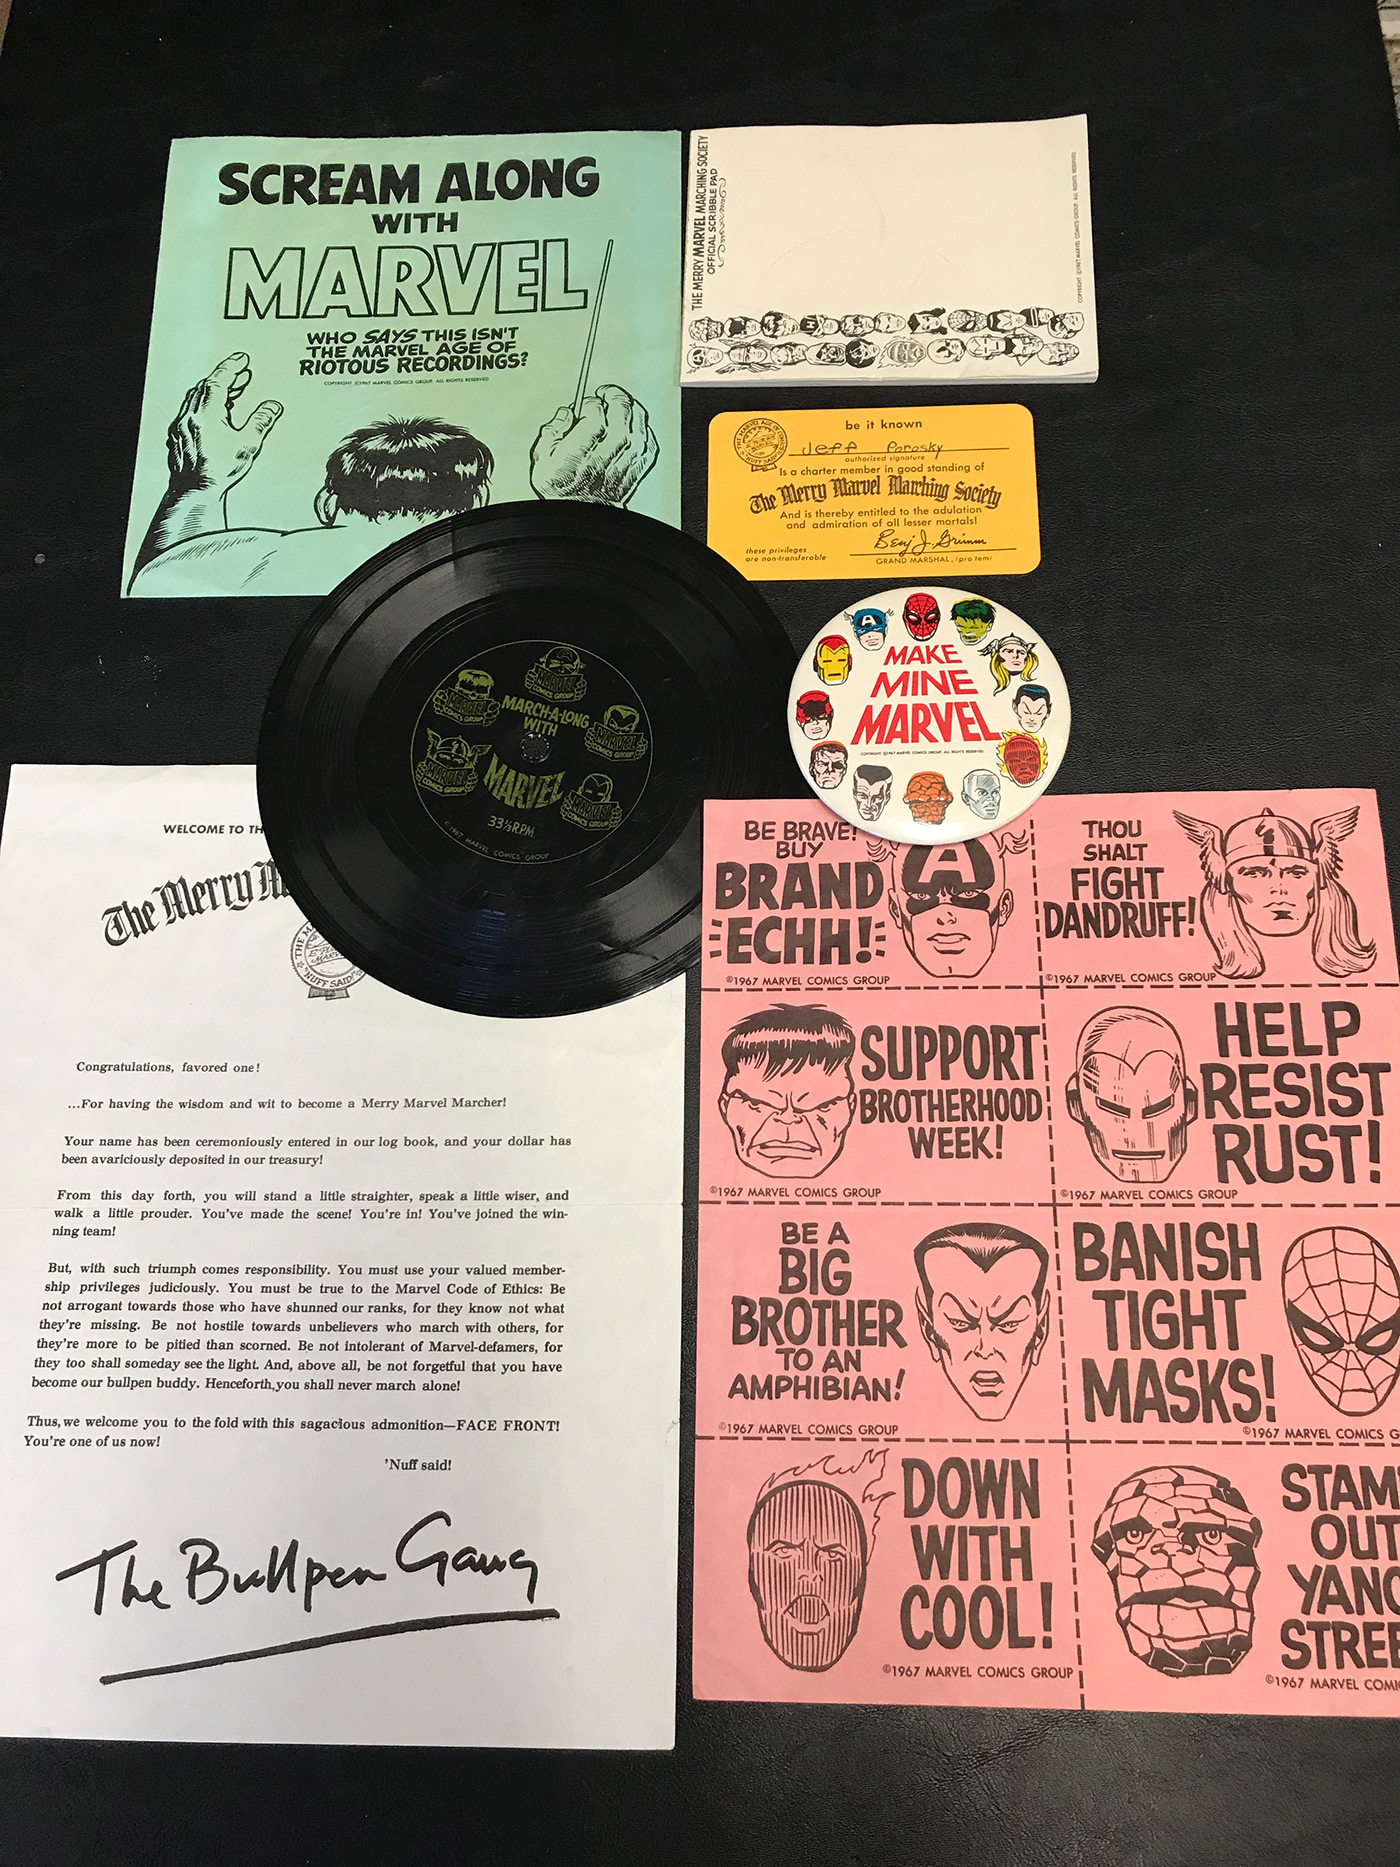 1967 MERRY MARVEL MARCHING SOCIETY